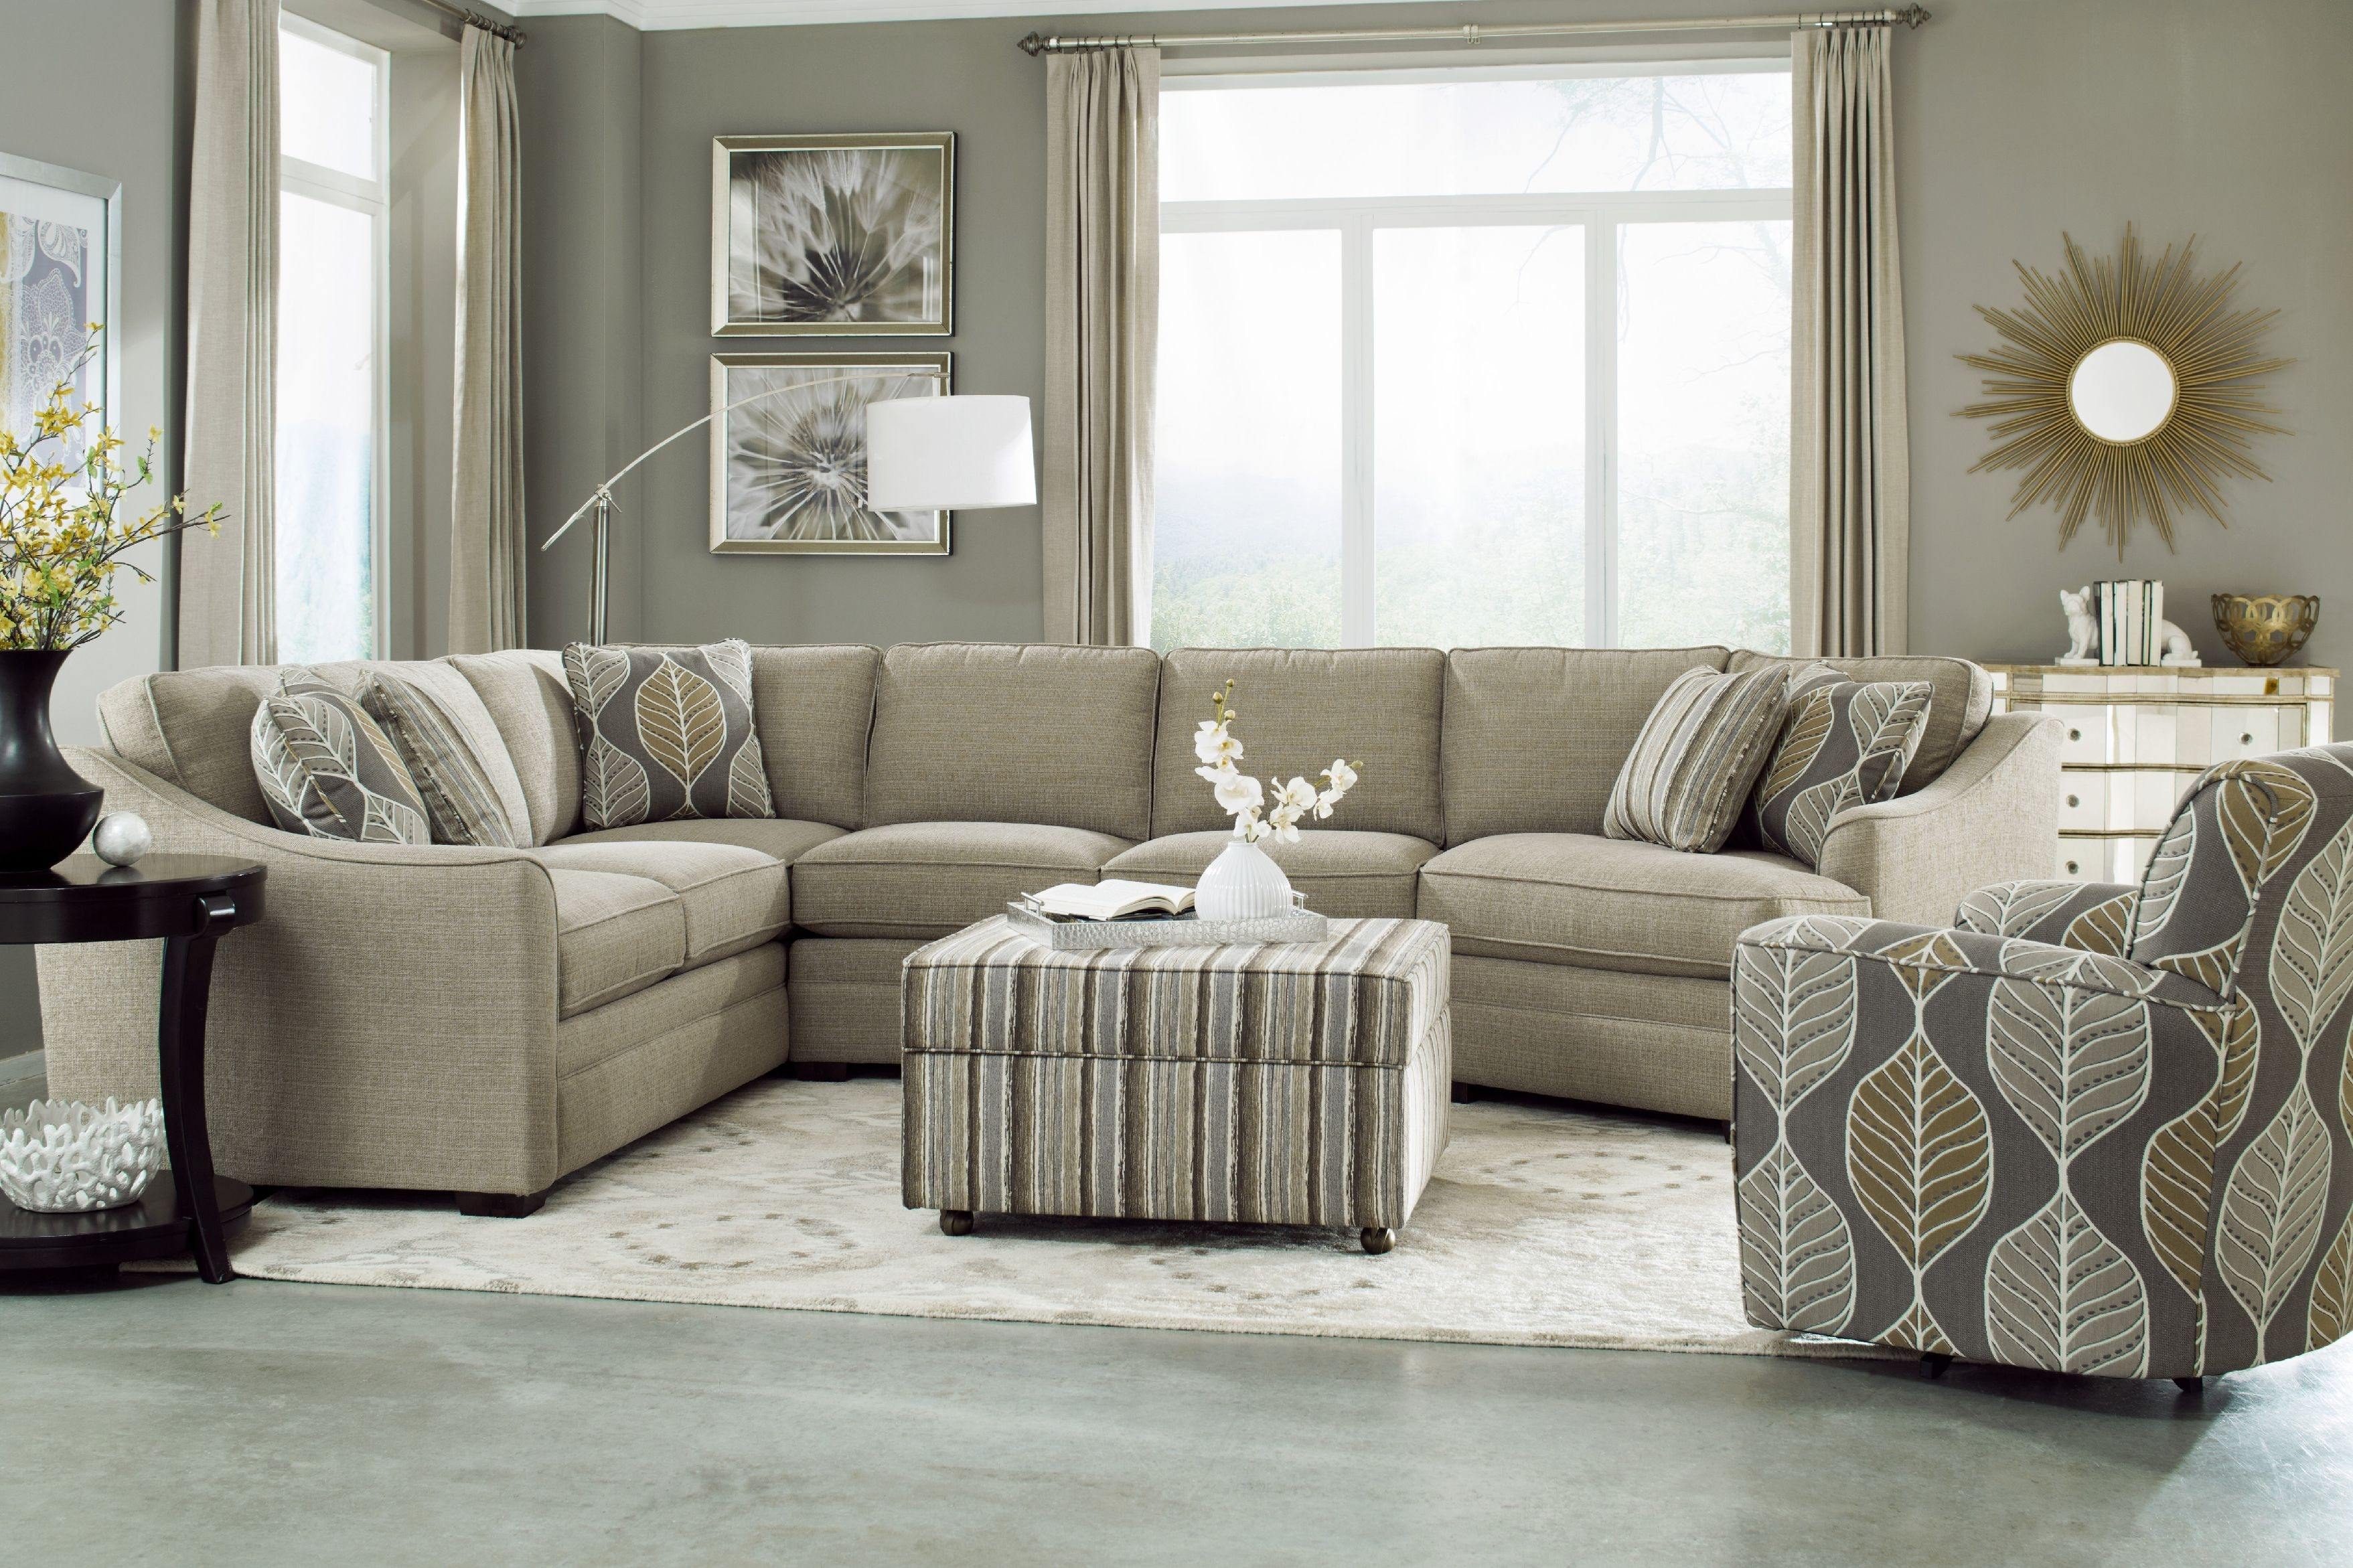 Genial ... Cozy Life Sectional F9431 Sect